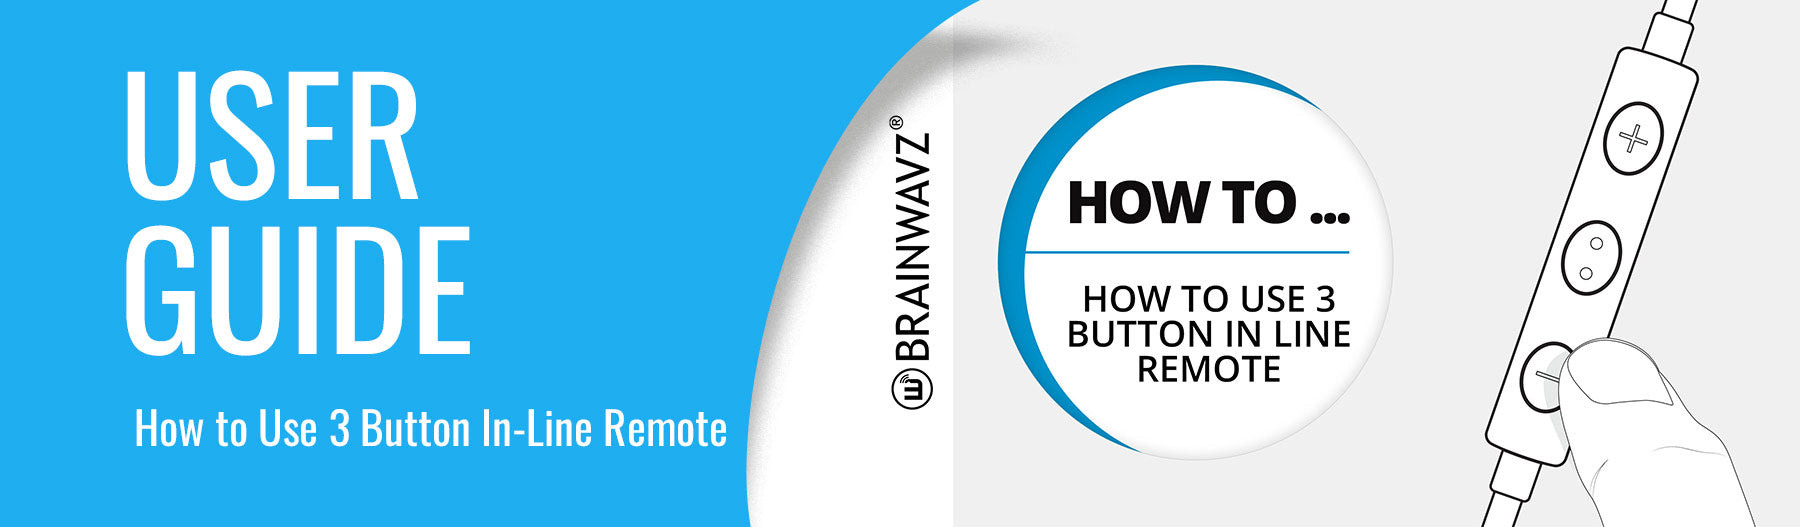 User guide for Brainwavz 3 button remote